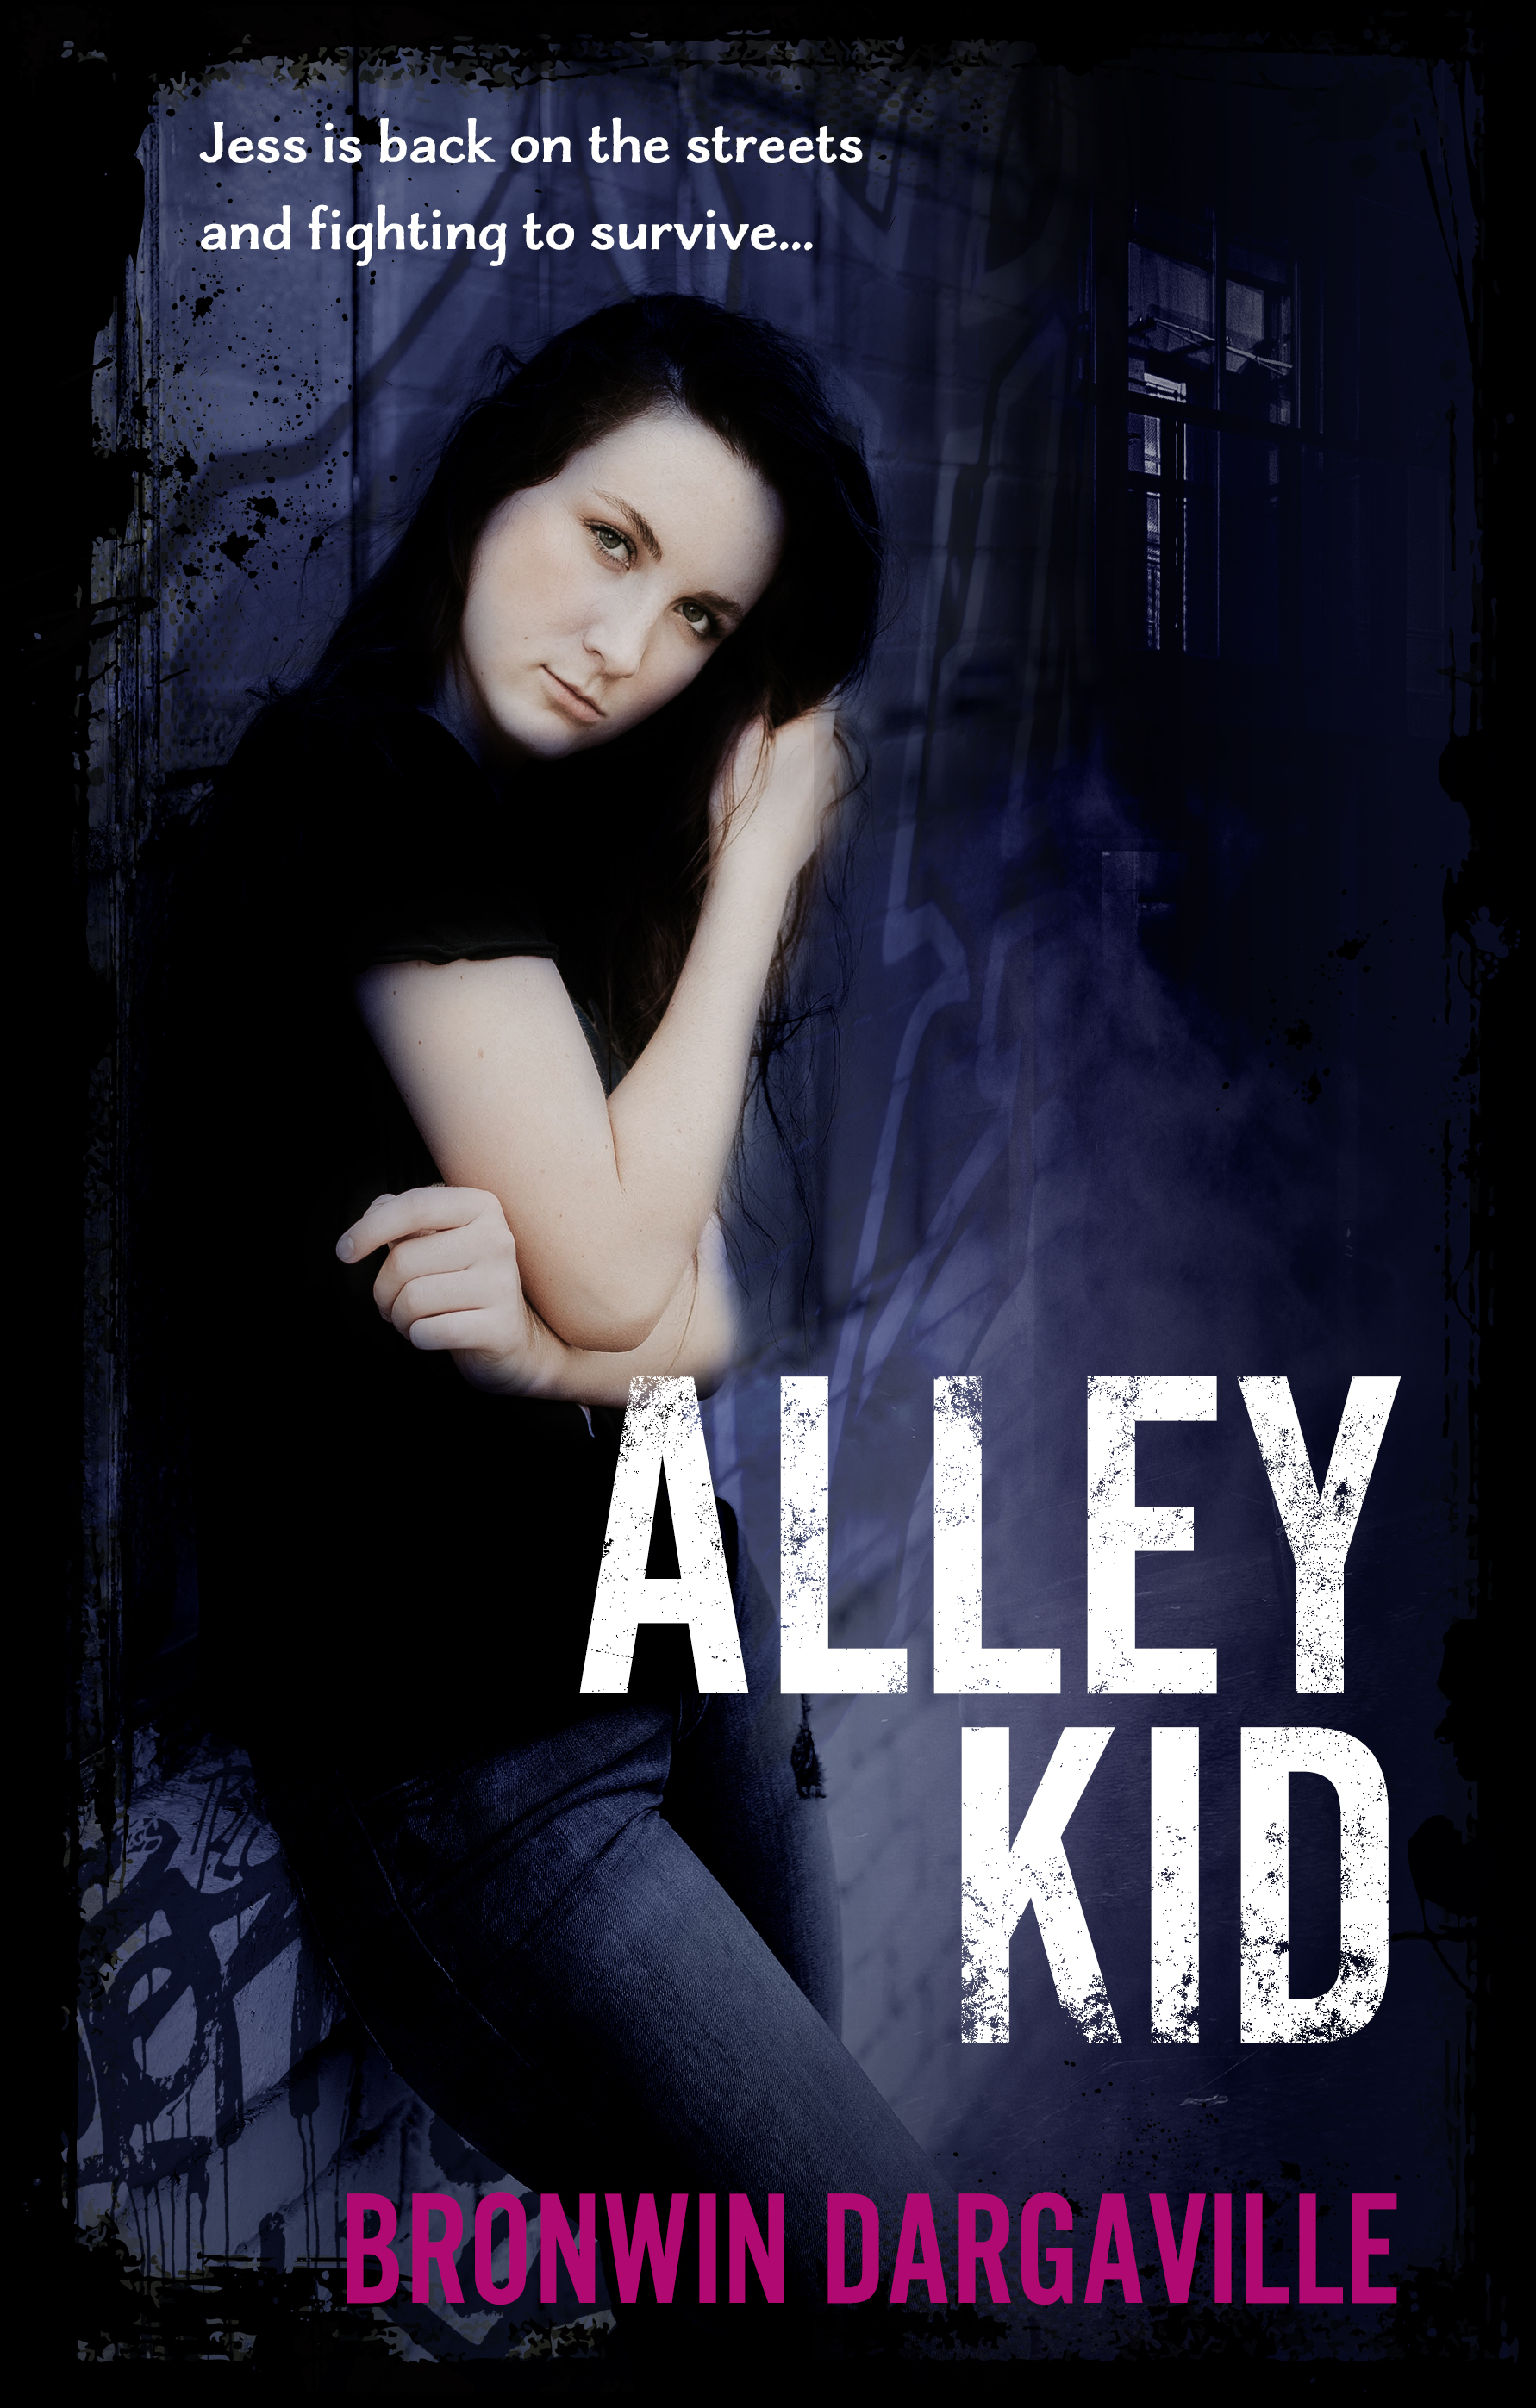 Alley Kid_cover_05.jpg